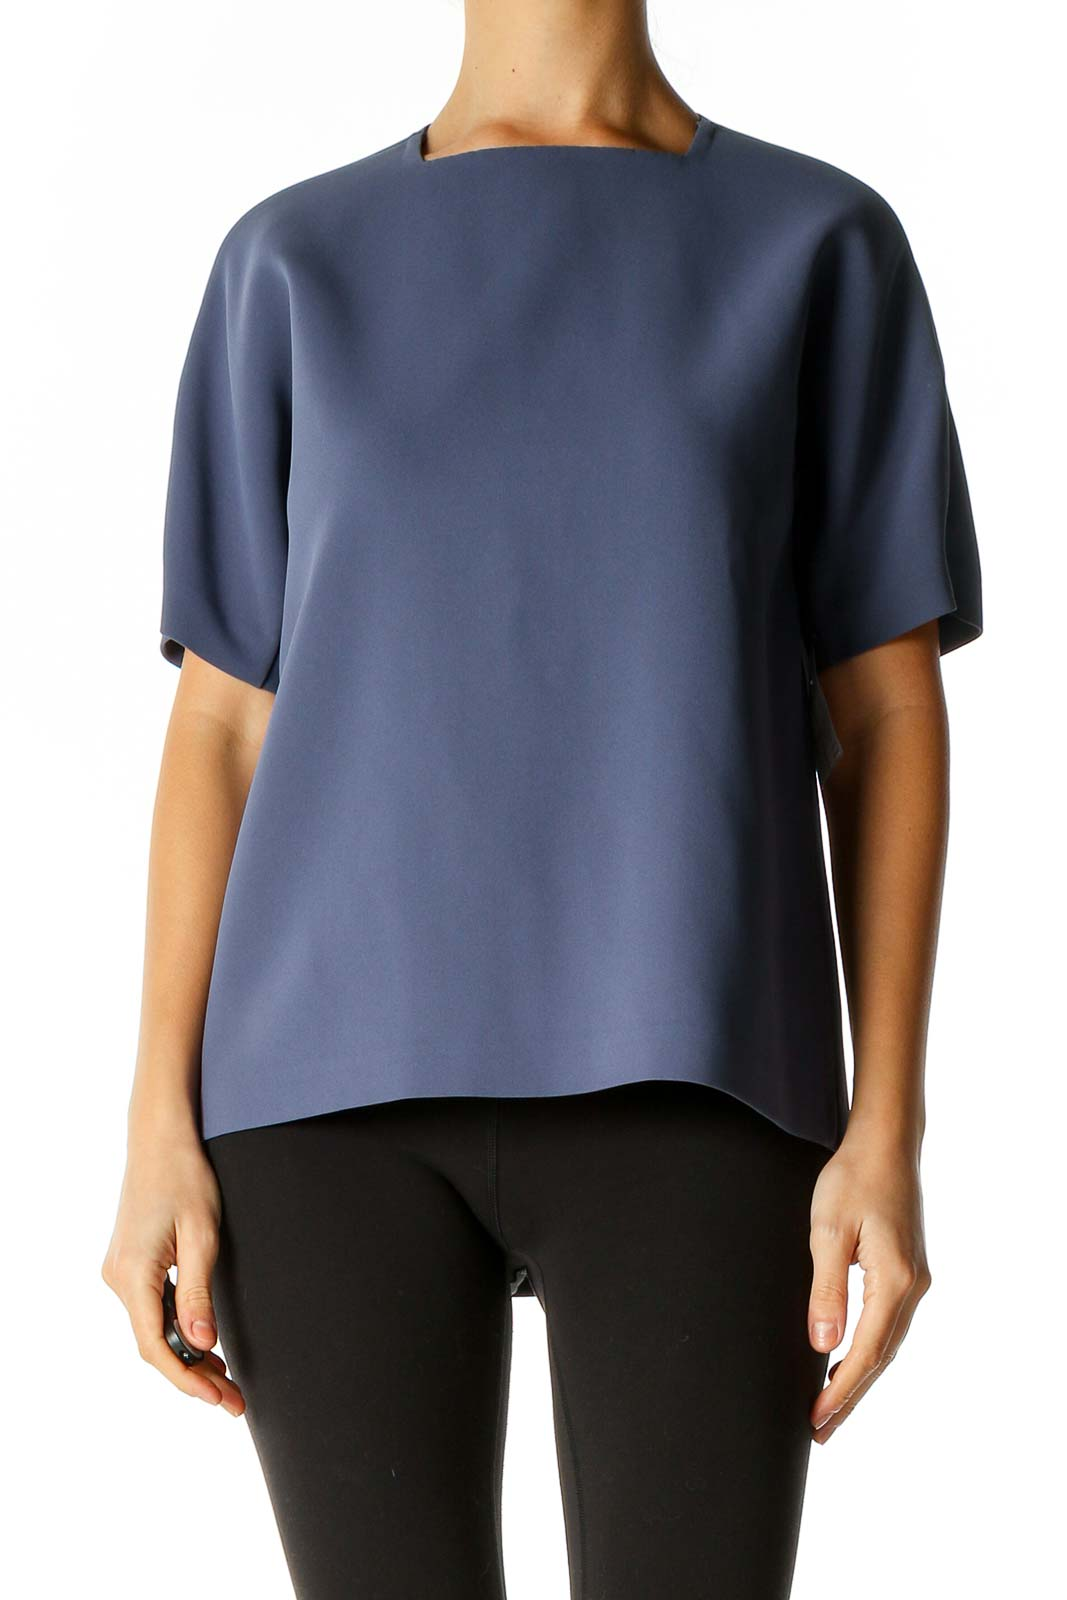 Blue Solid Casual T-Shirt Front